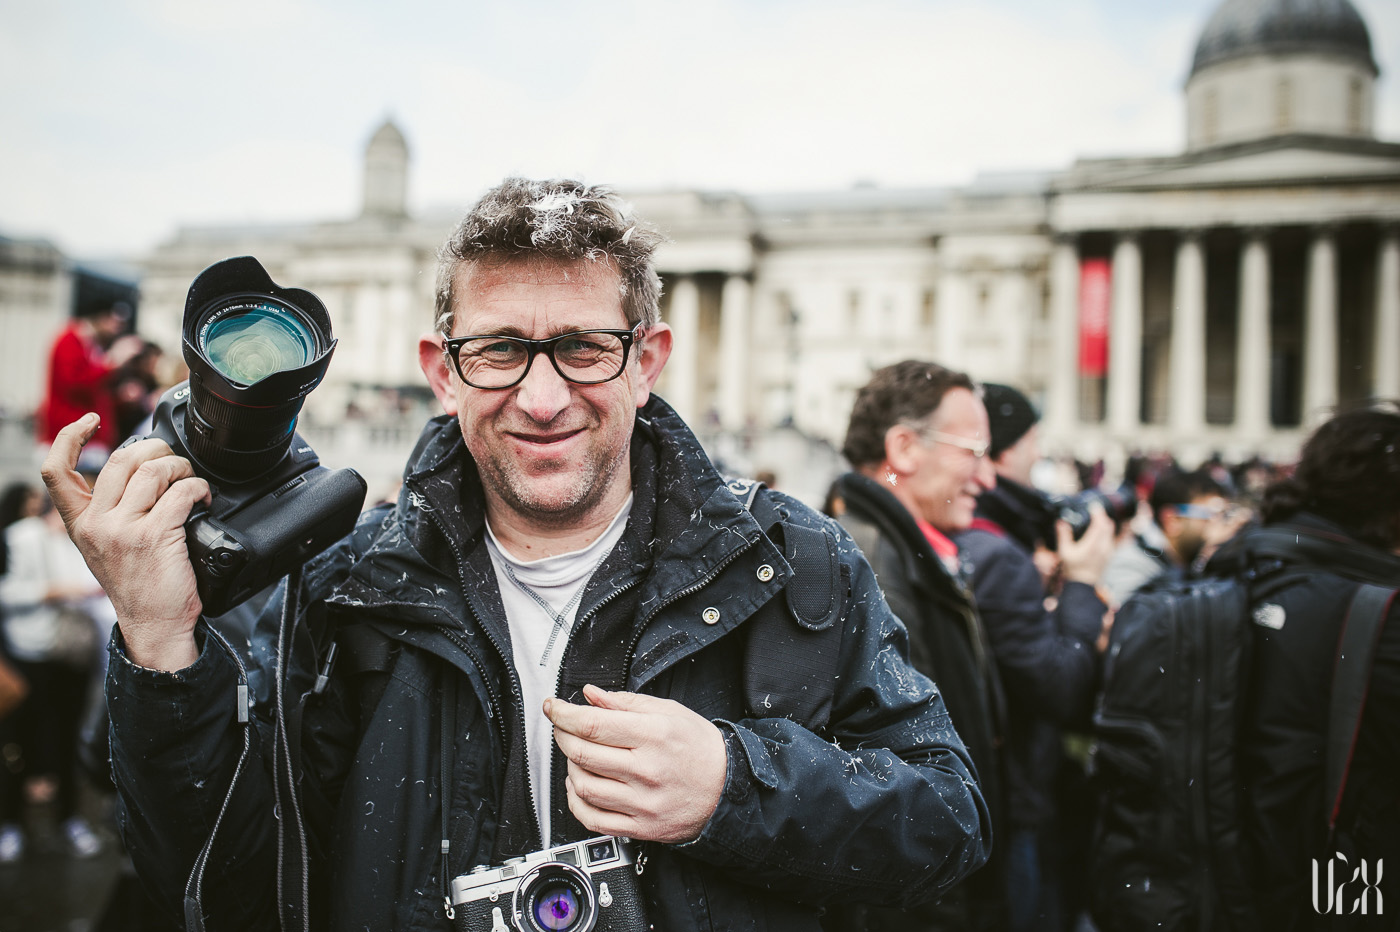 International Pillow Fight Day In London 2015 Street Photography Pagalviu Musis 12